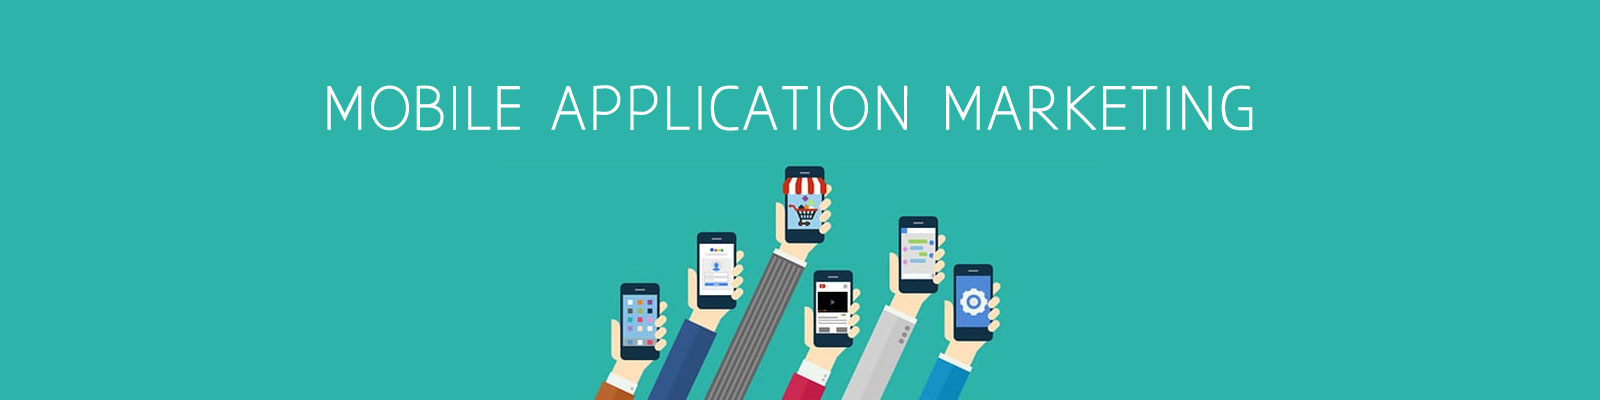 MOBILE APPLICATION MARKETING